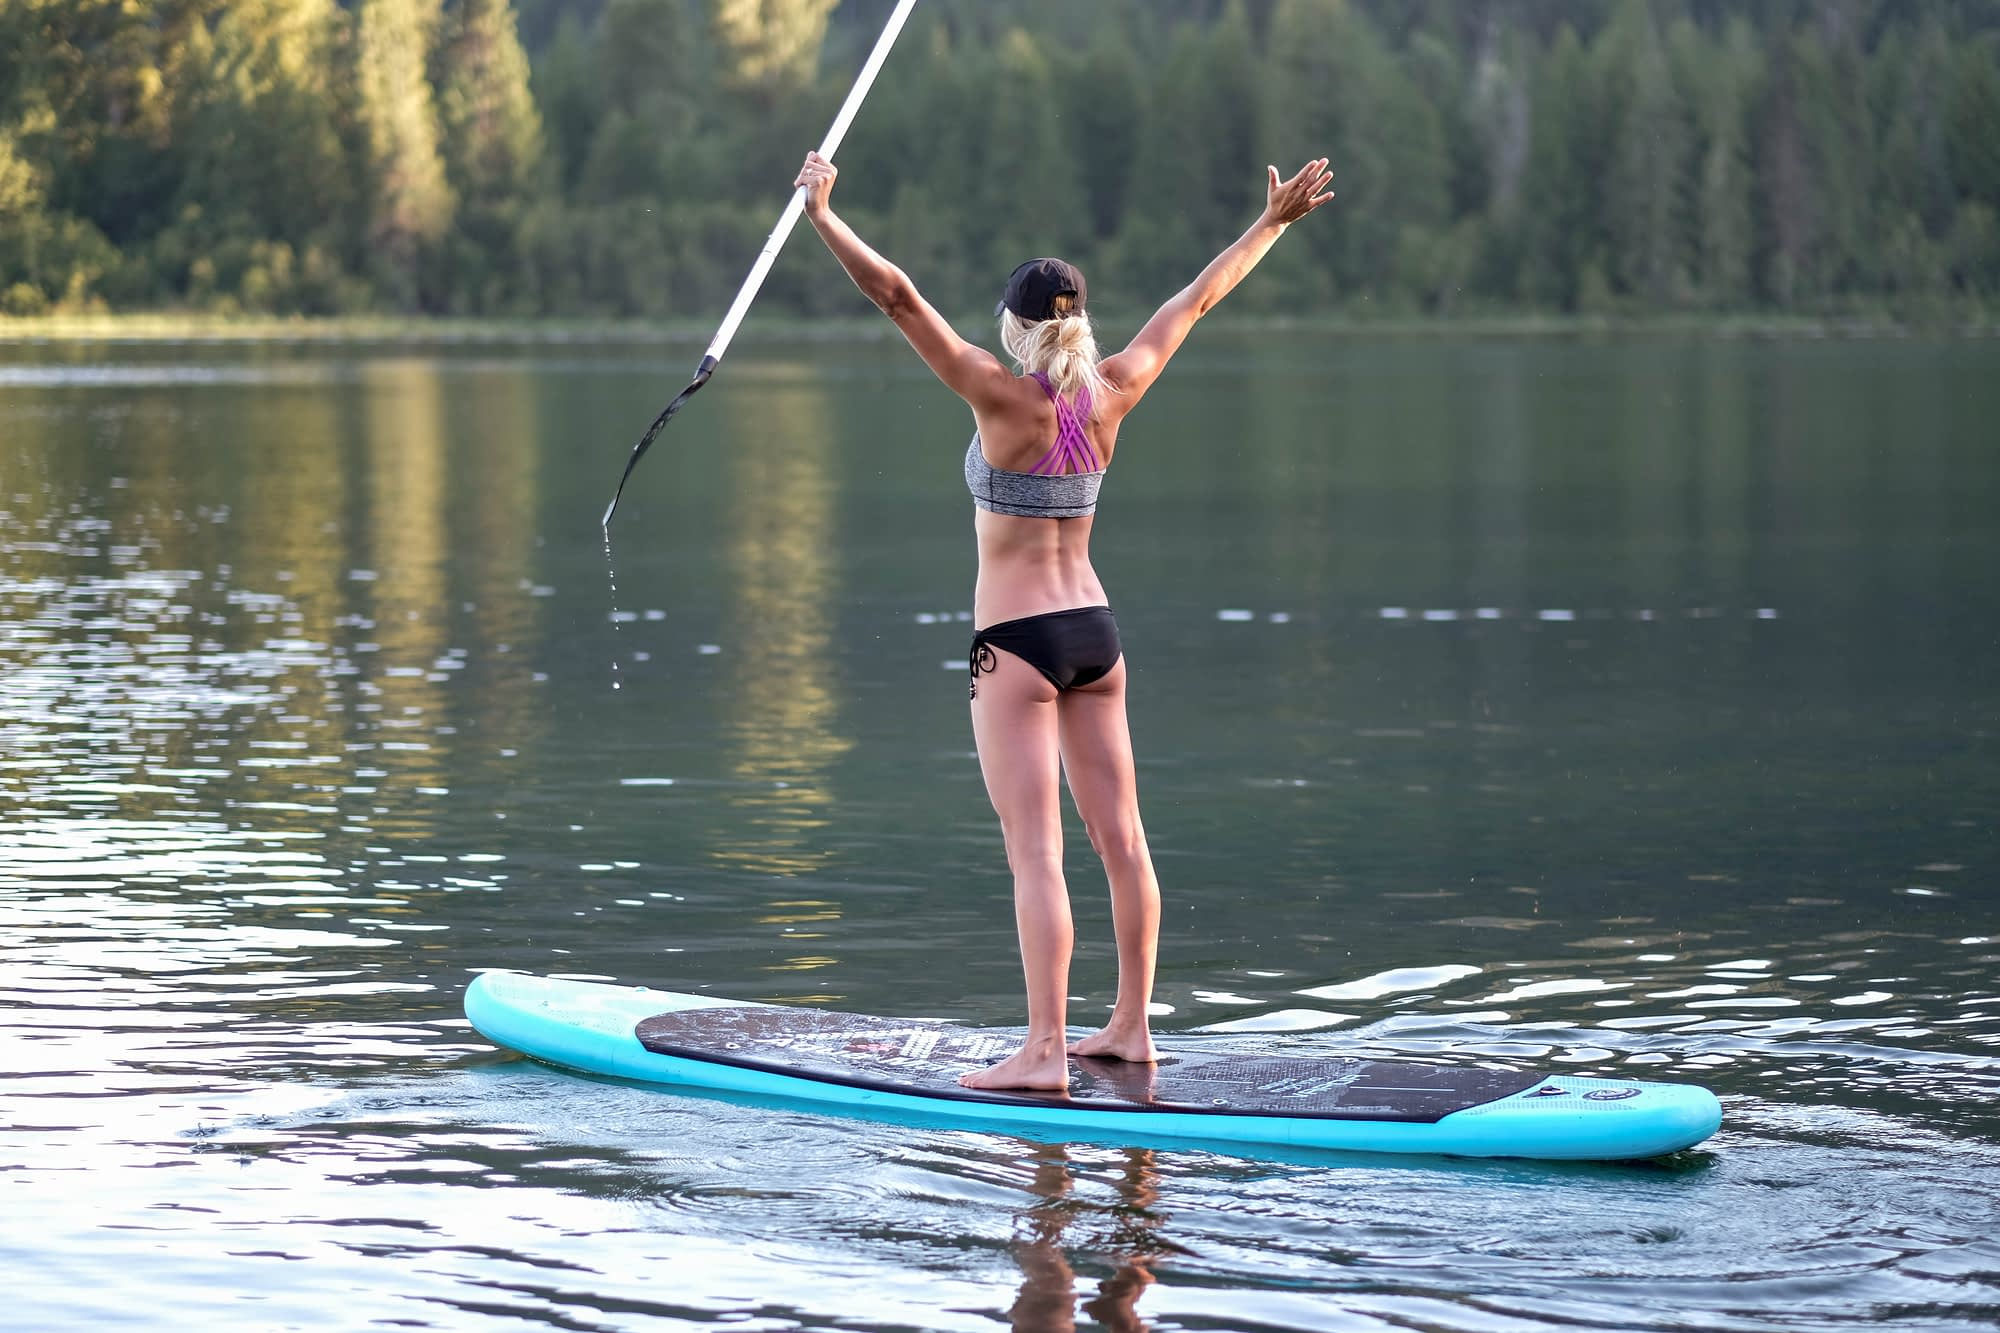 Blond girl standing on inflatable SUP in the middle of a lake with arms raised